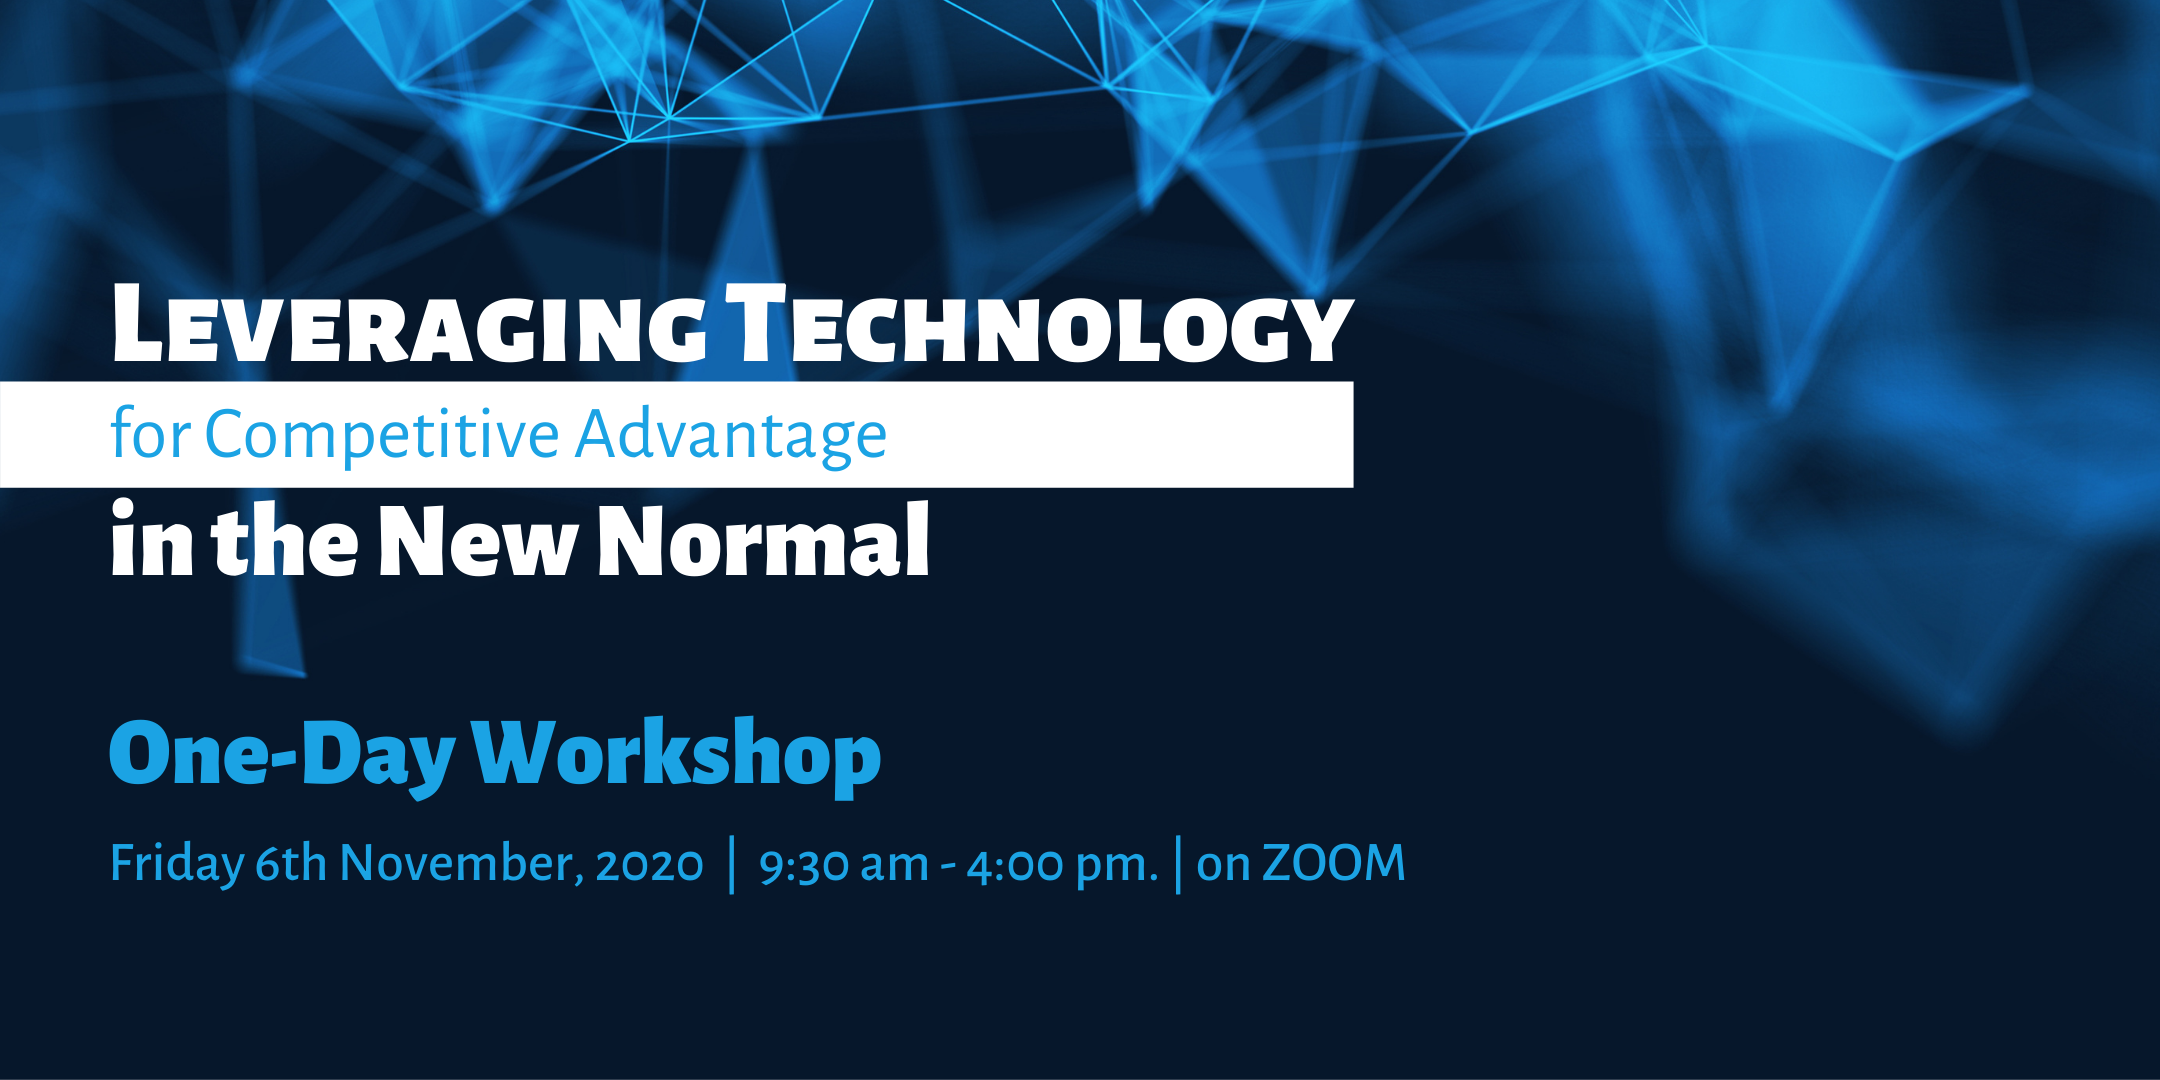 One-Day Technology Workshop